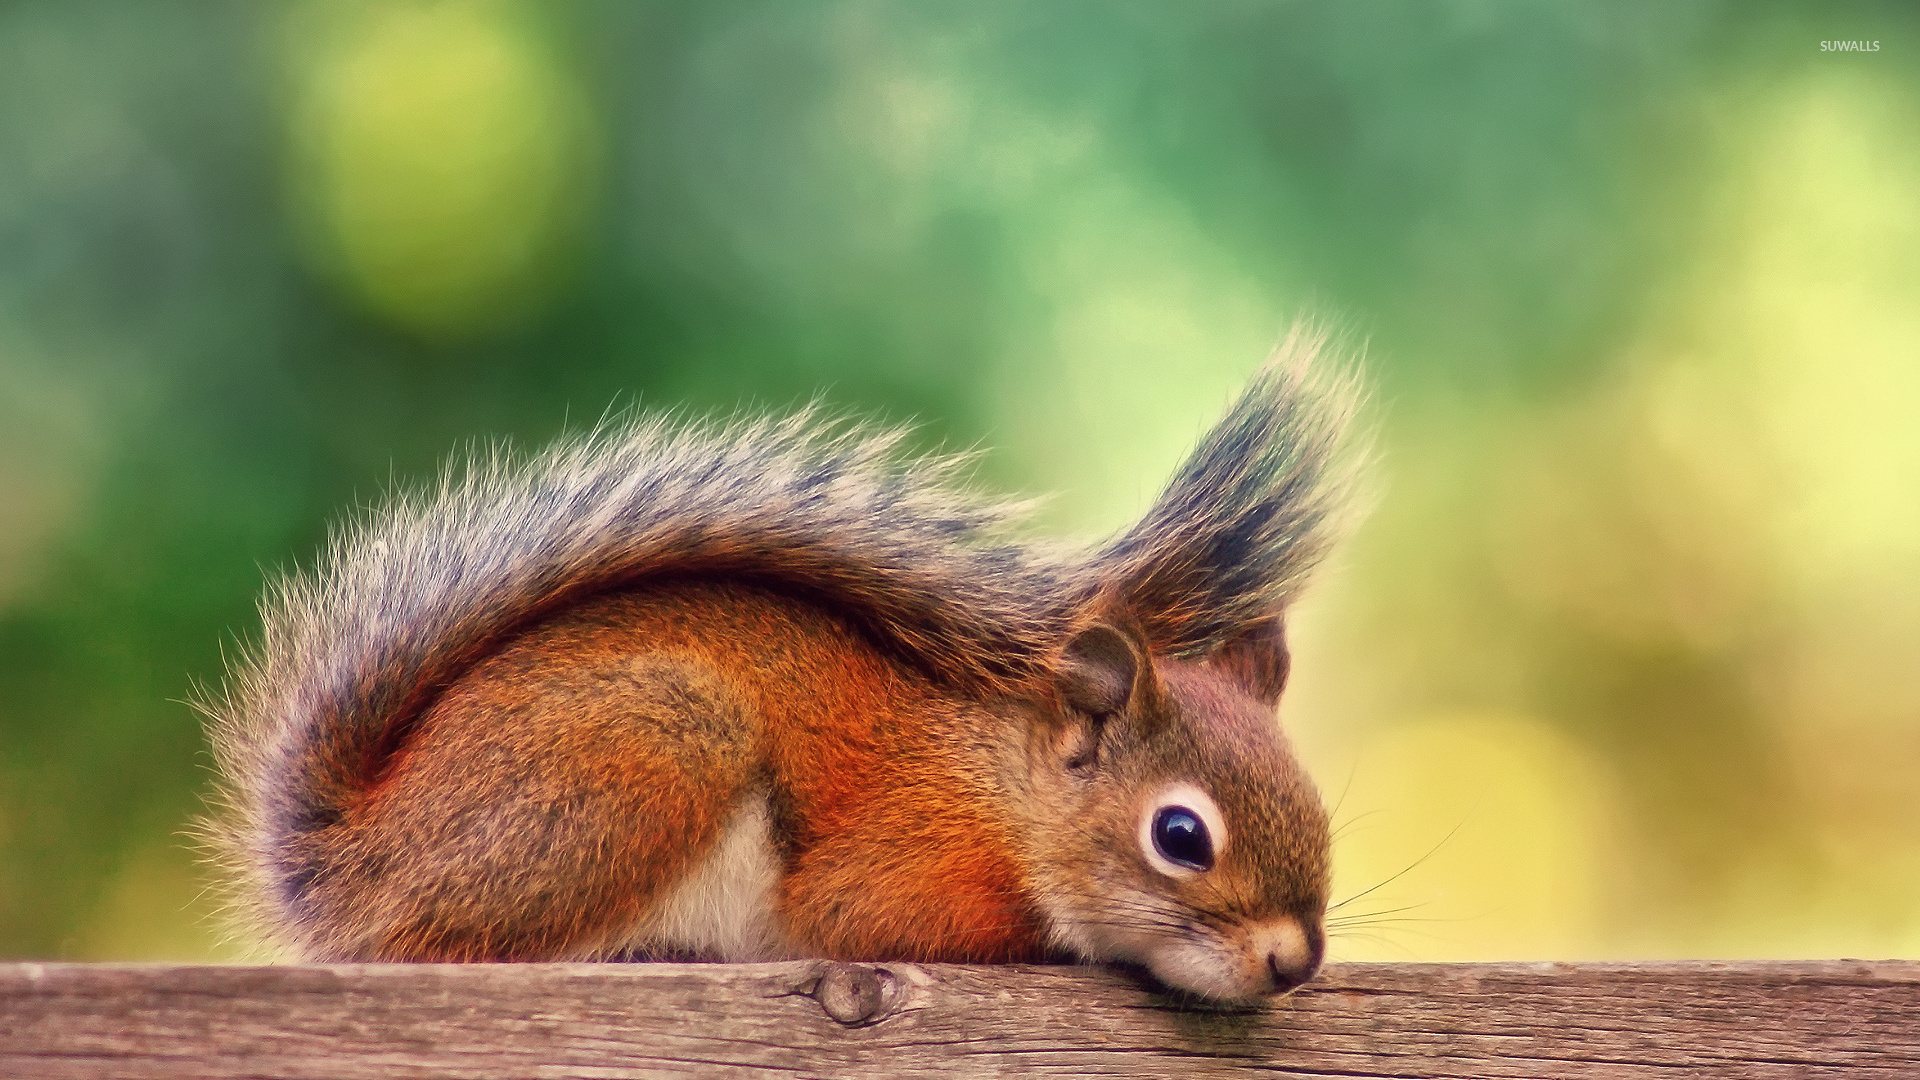 Cute squirrel wallpaper - Animal wallpapers - #39090